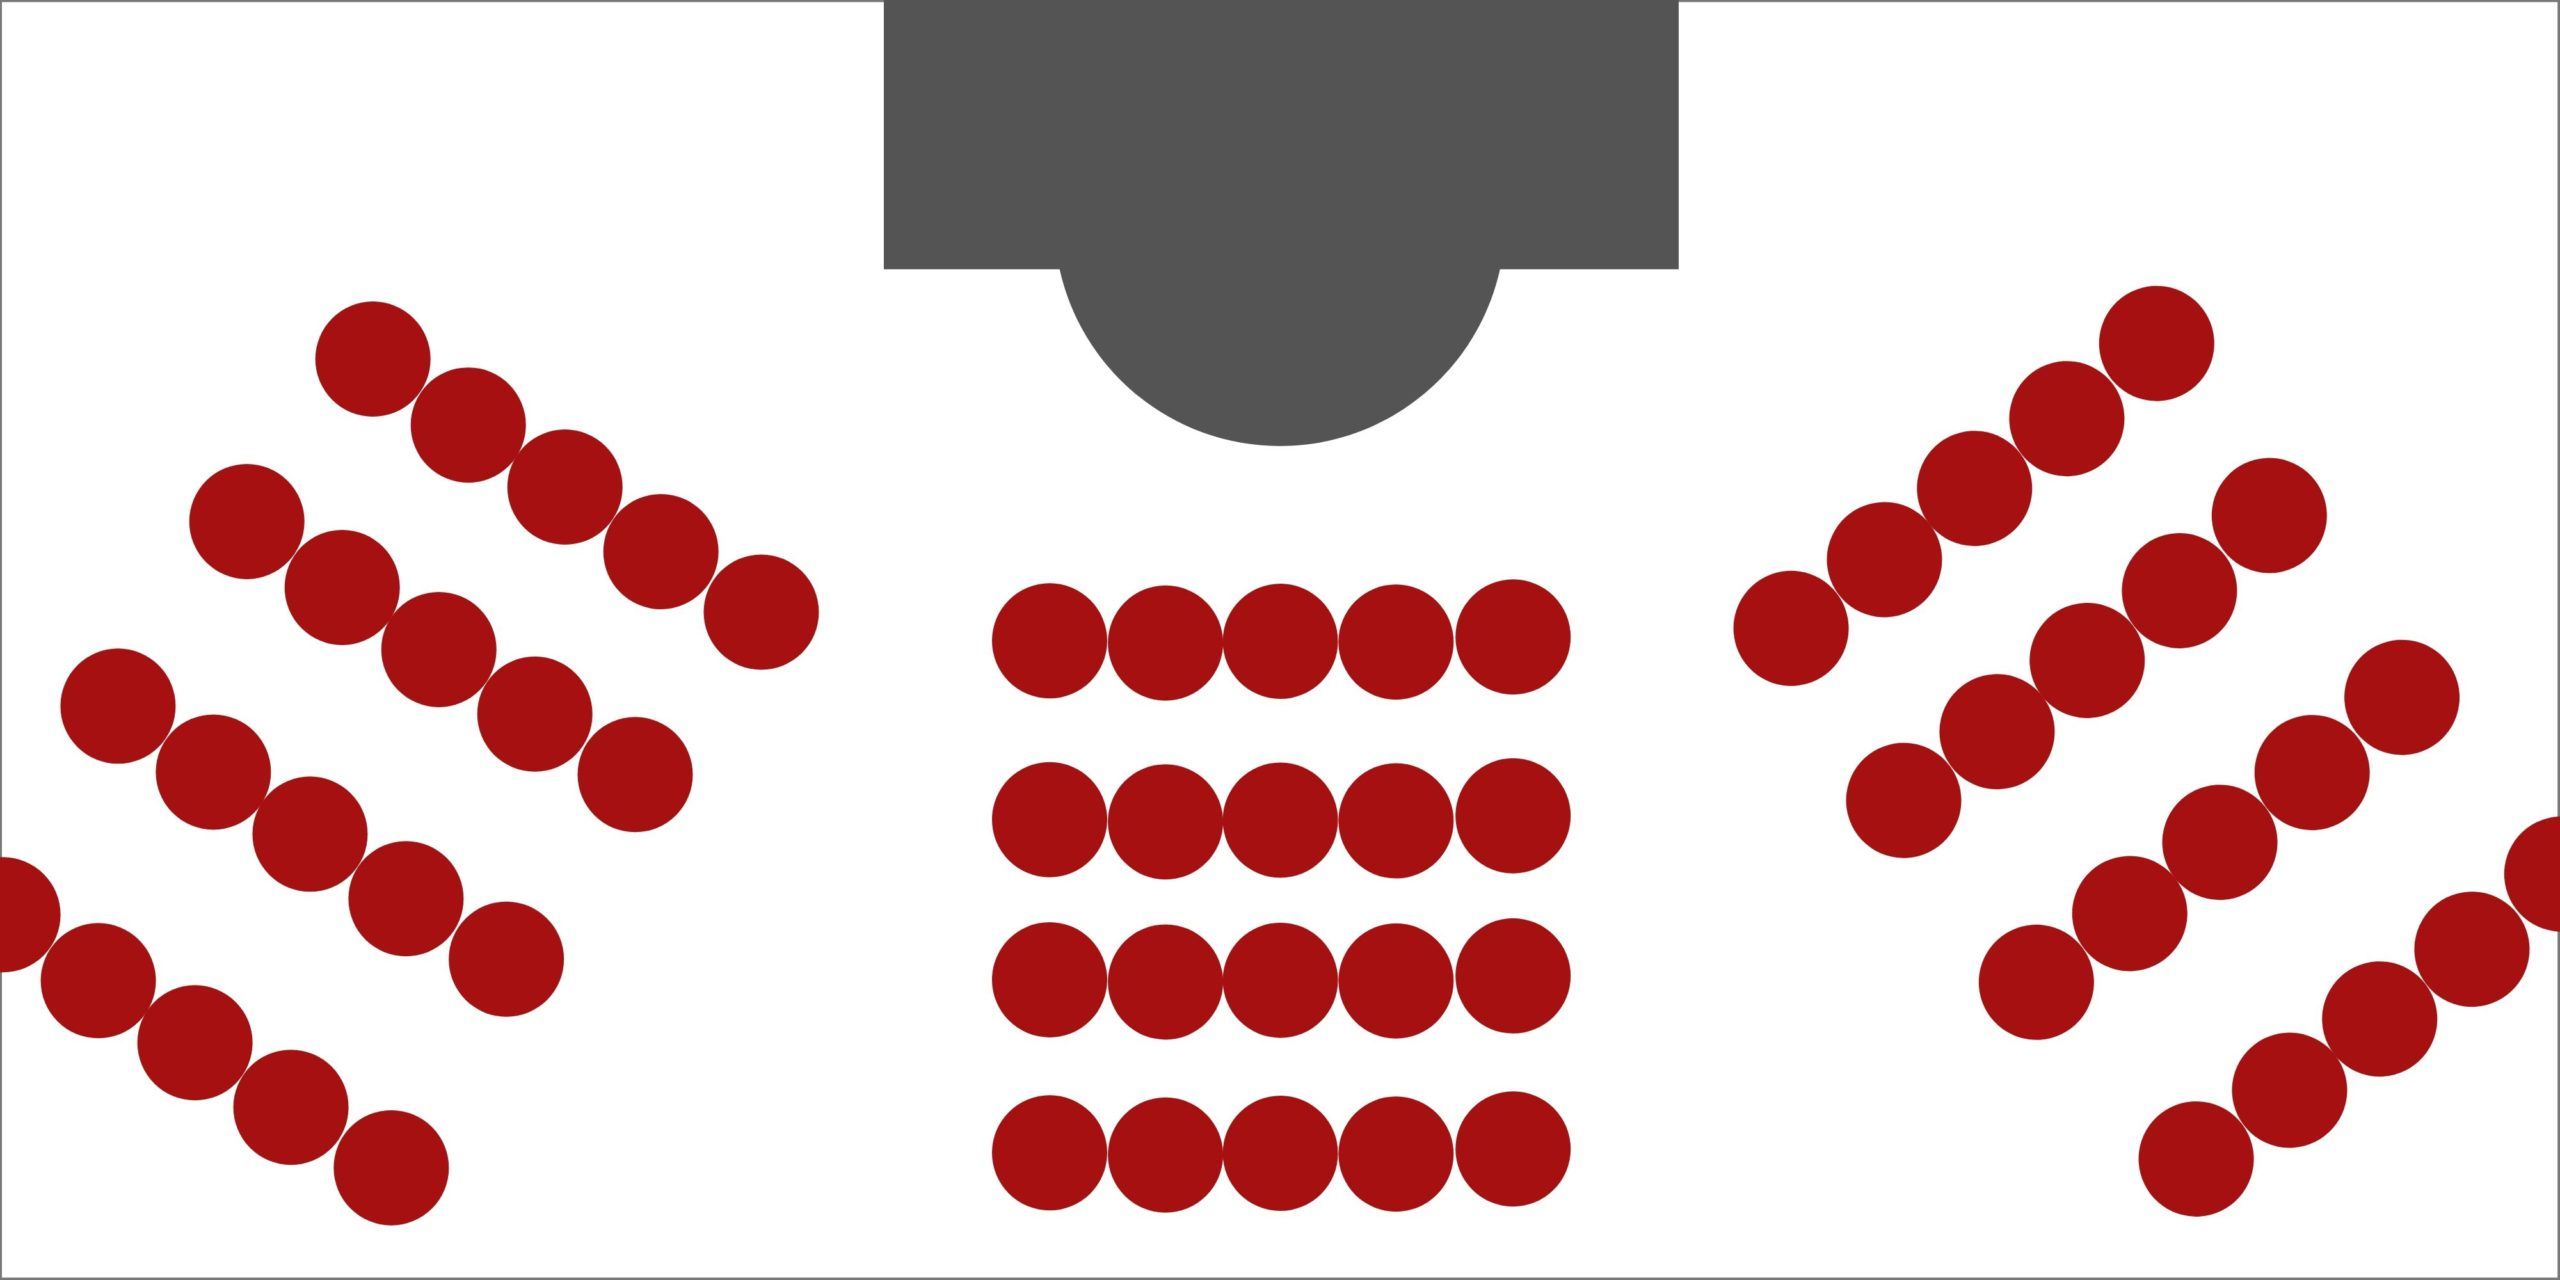 Church Seating Layouts To Try Churchplaza Blog